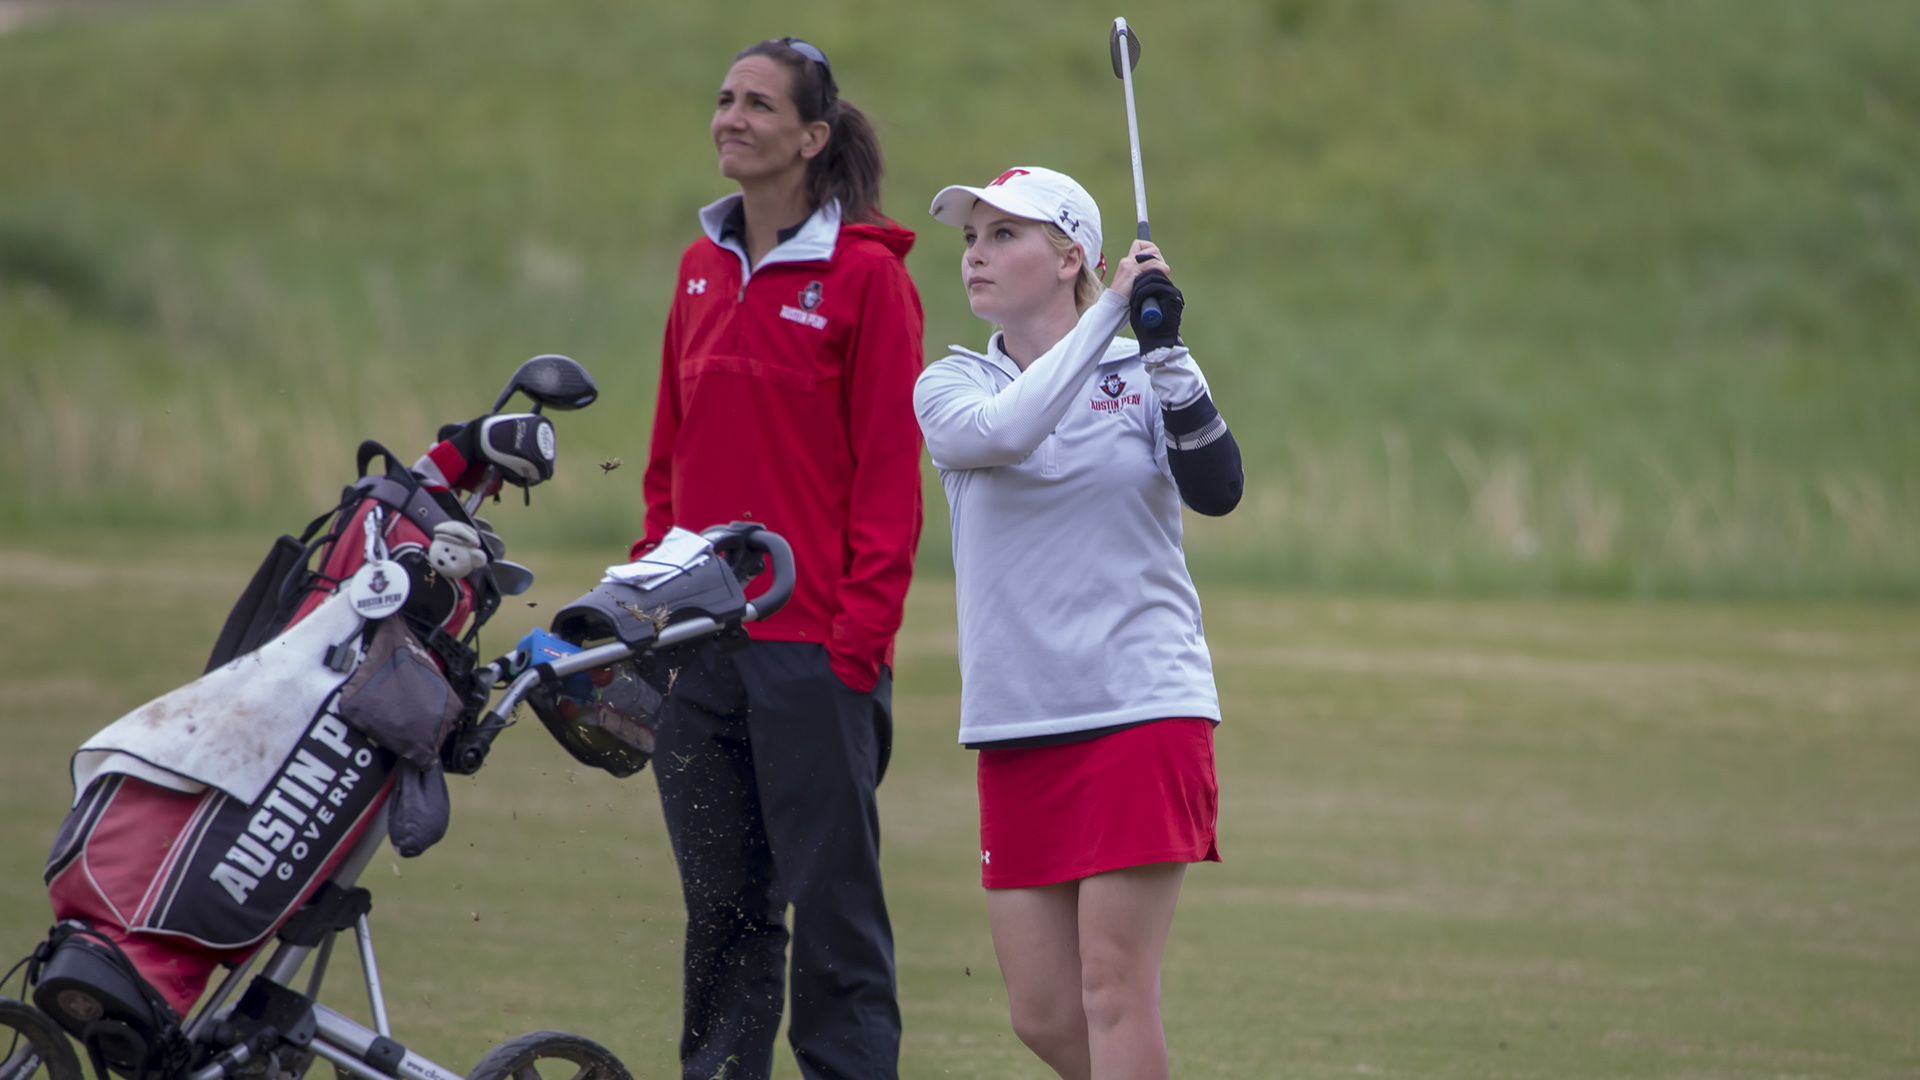 Stamps hits ball during Golf Tournament